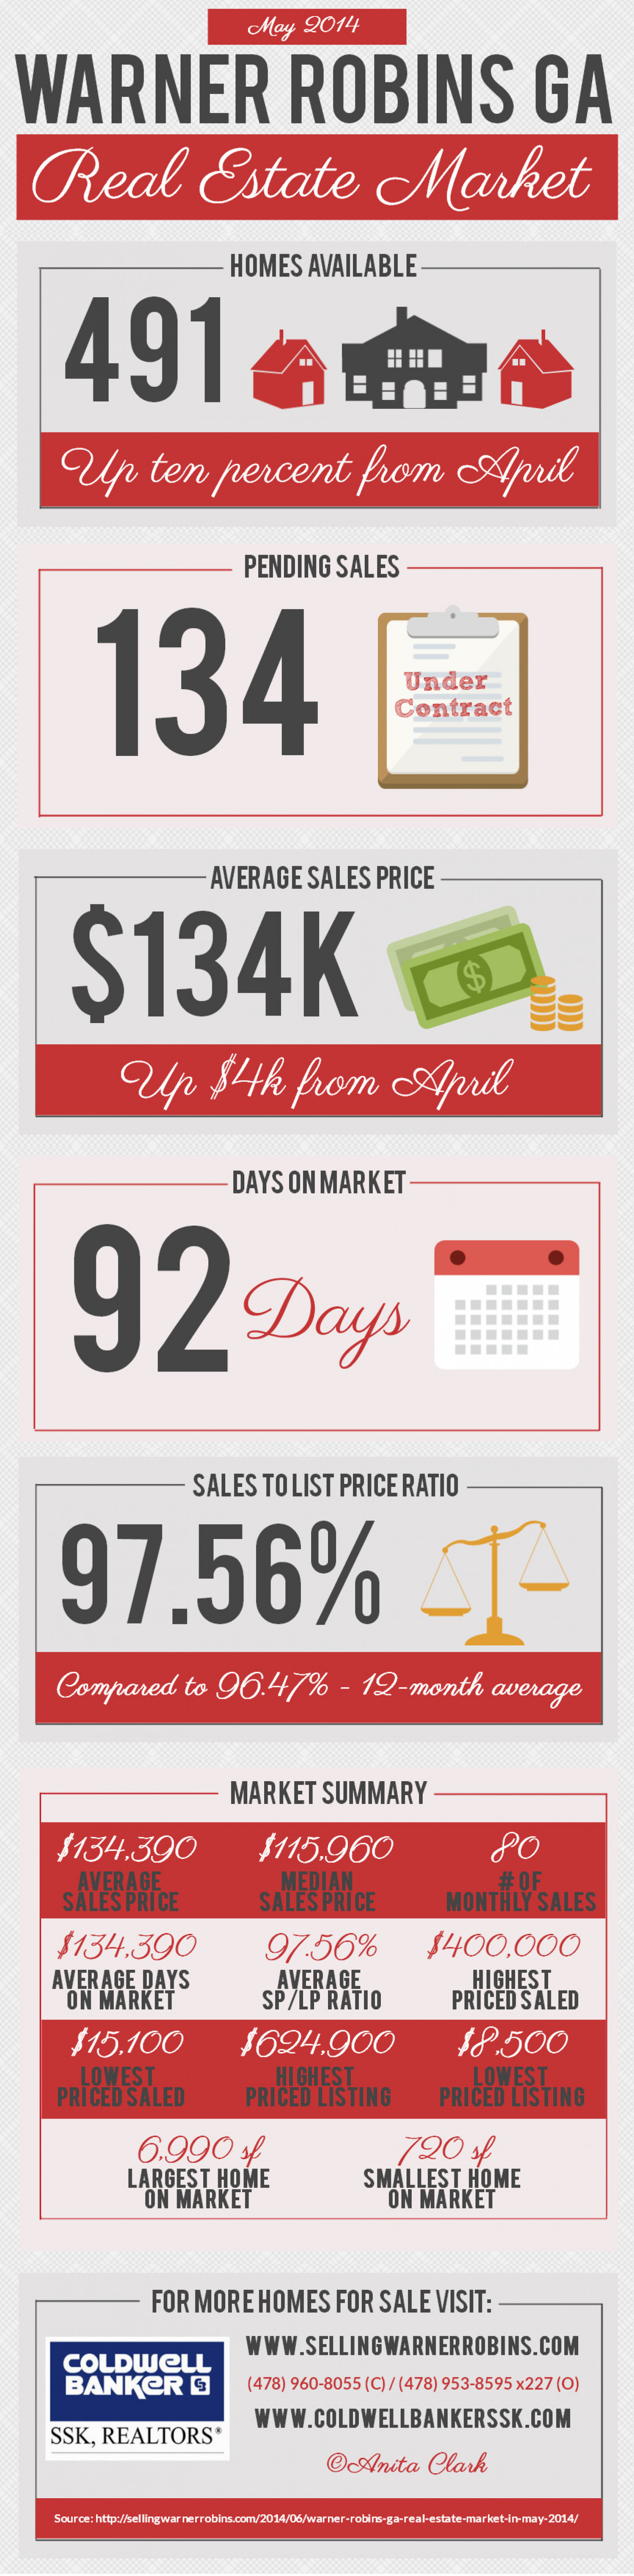 Warner Robins GA Real Estate Market in May 2014 Infographic